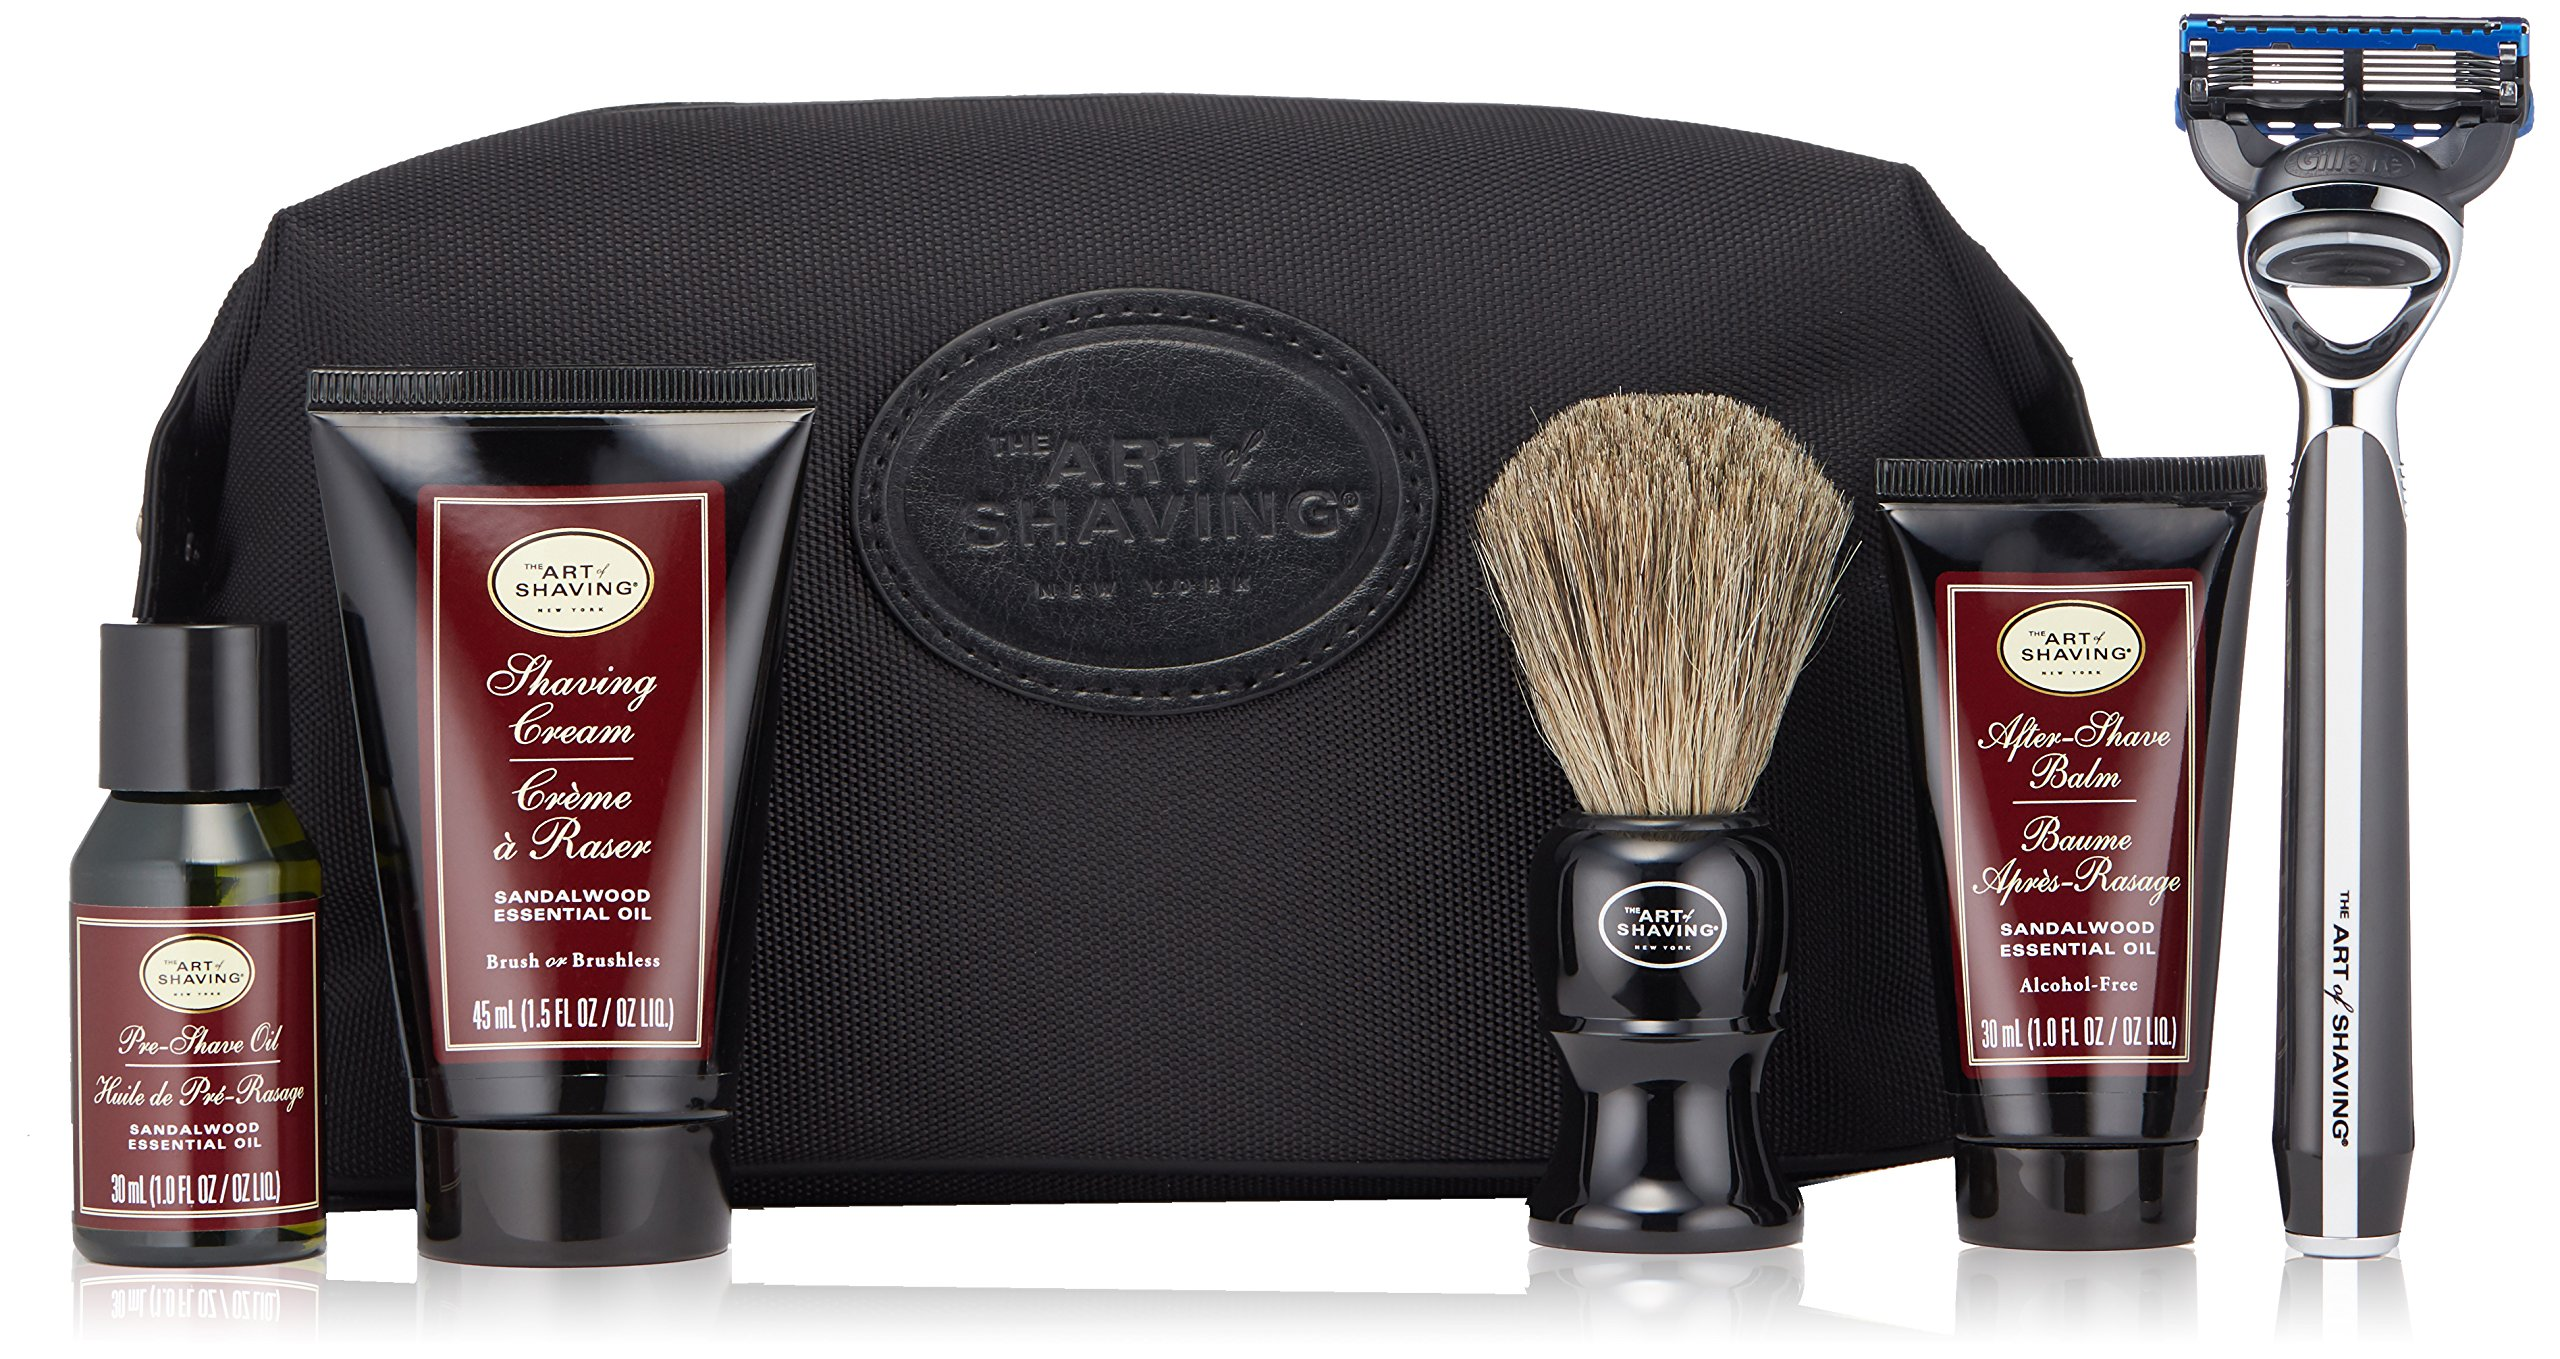 The Art of Shaving 5 Piece Travel Kit with Morris Park Razor, Sandalwood by The Art of Shaving